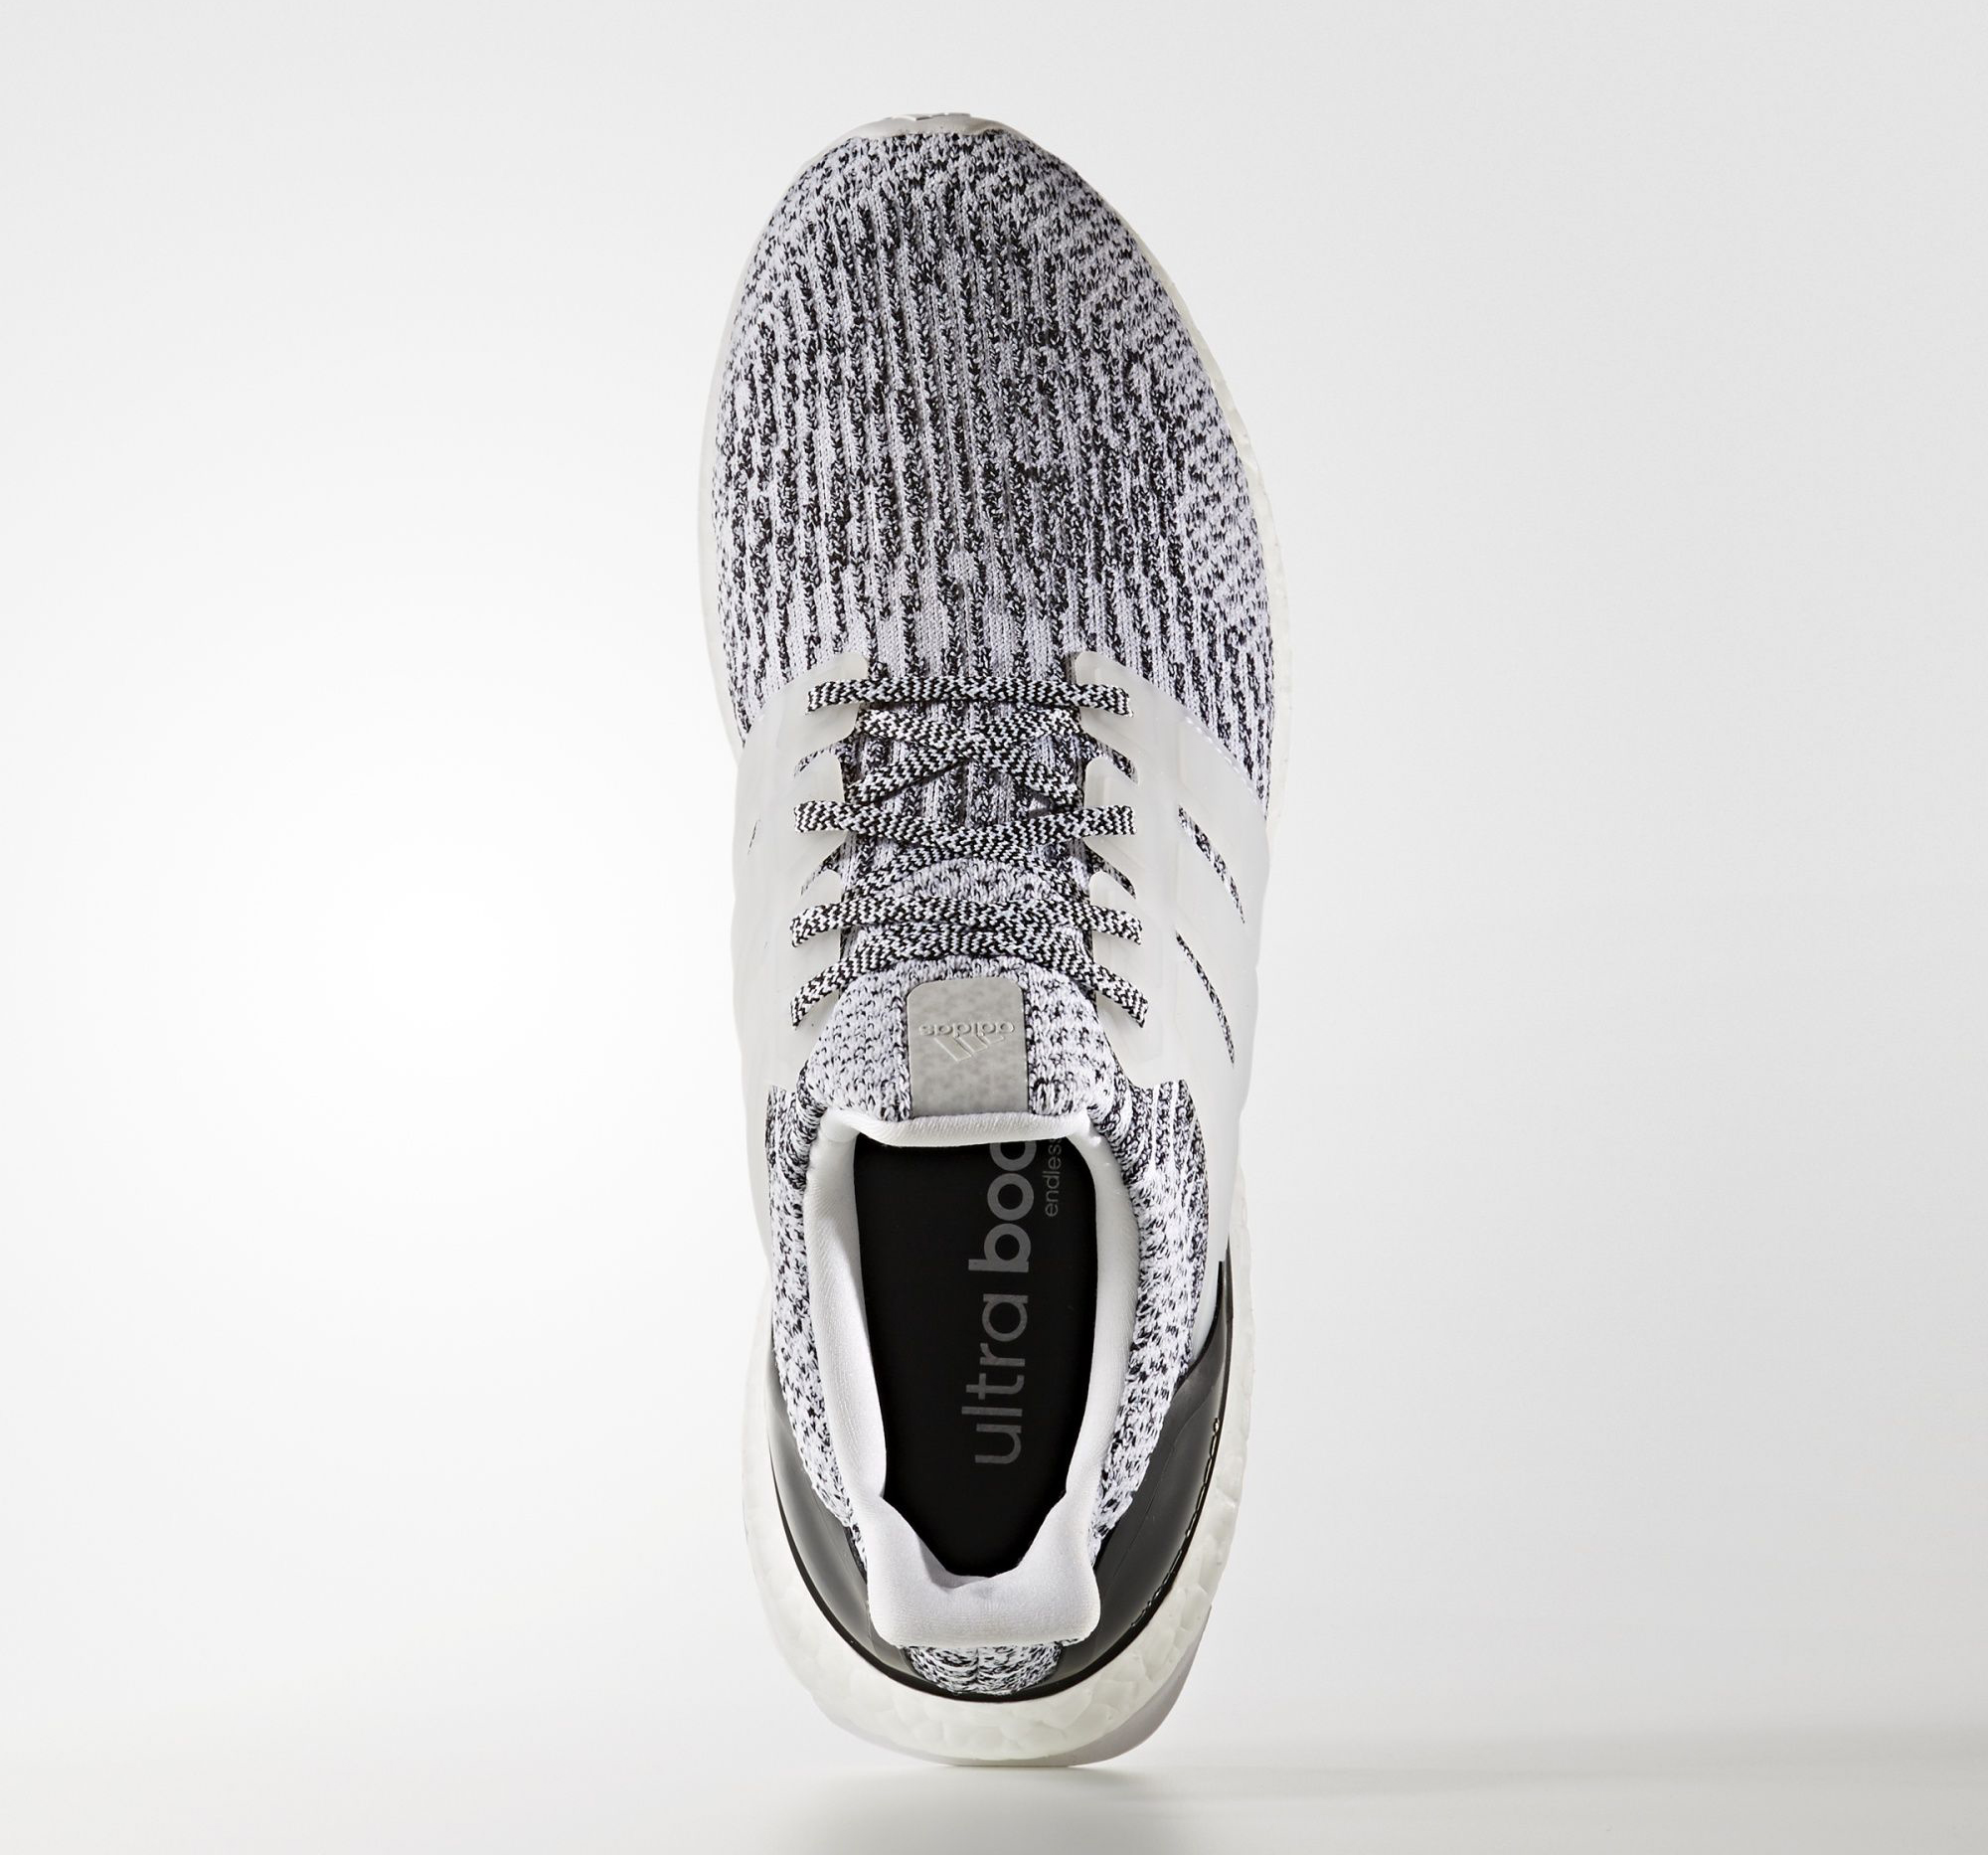 running shoes release date pre order Adidas Ultra Boost Oreo S80636 | Sole Collector